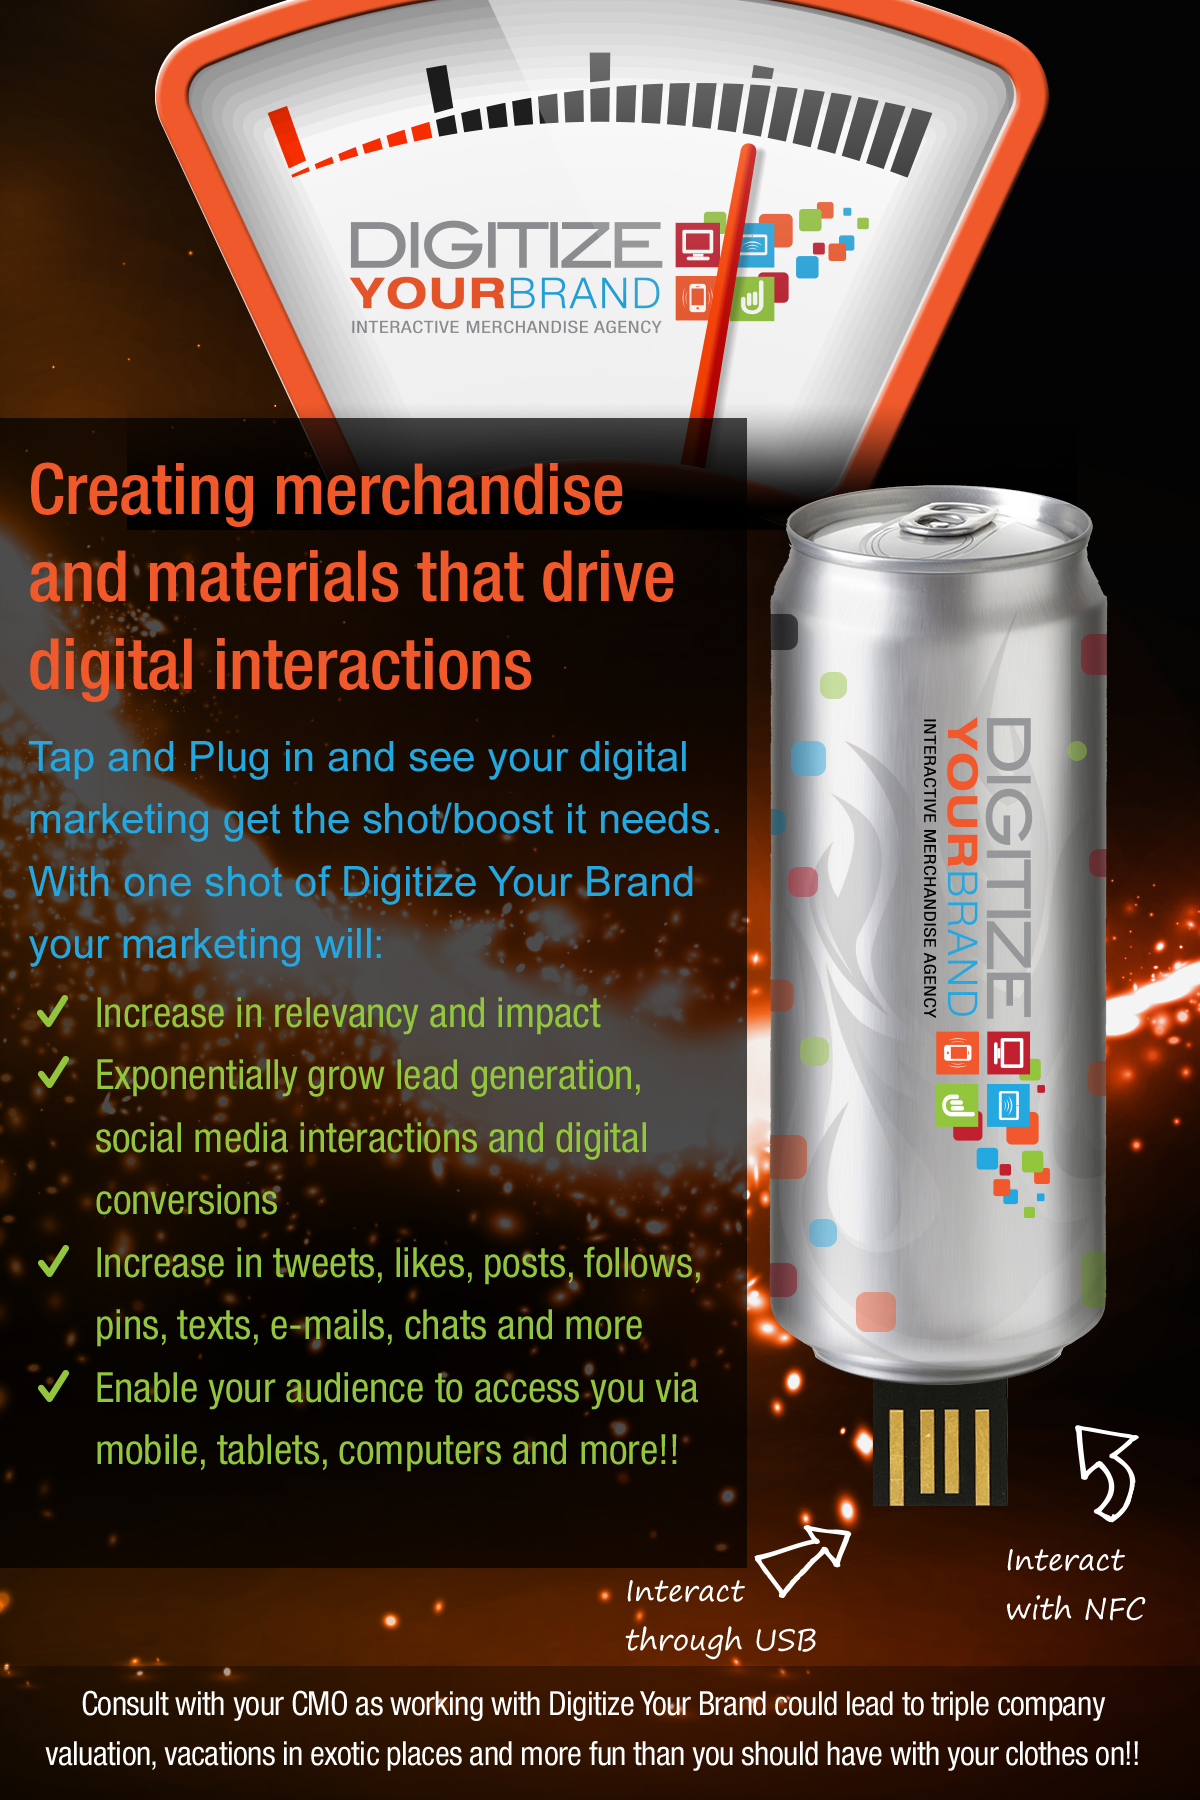 DigitizeYourBrand